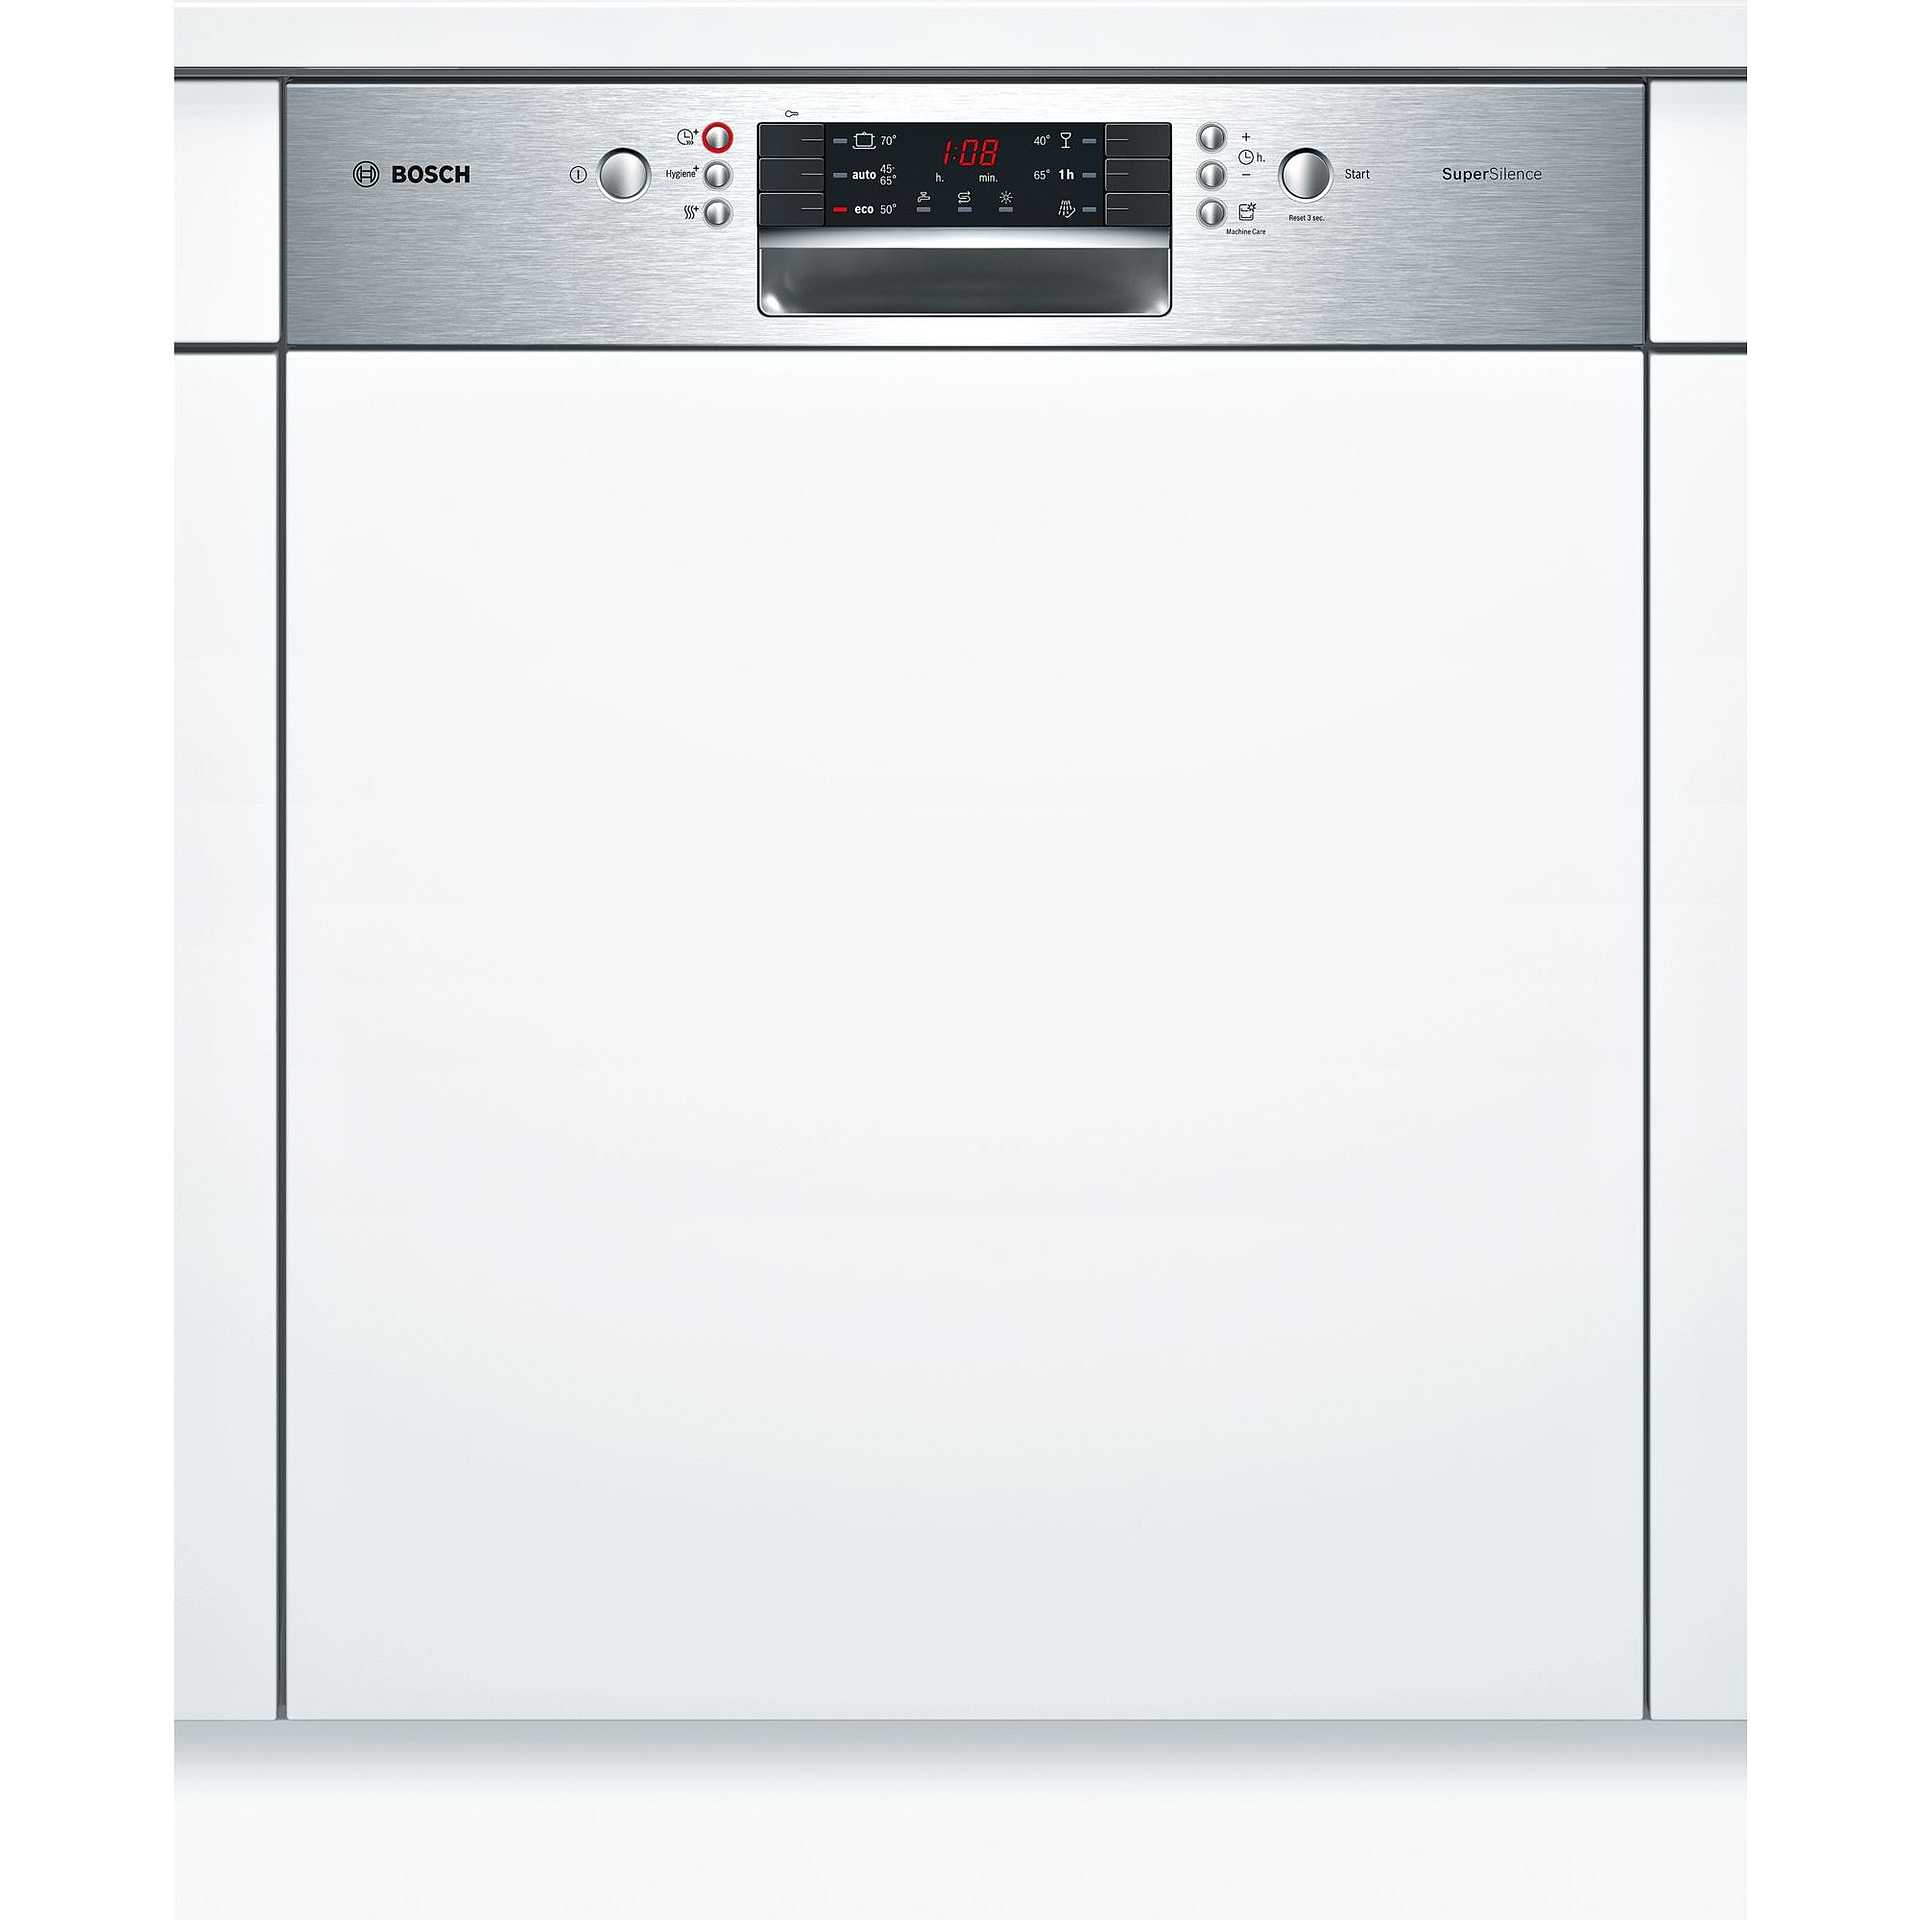 Bosch SMI46MS03E SuperSilence lavastoviglie da incasso integrabile ...